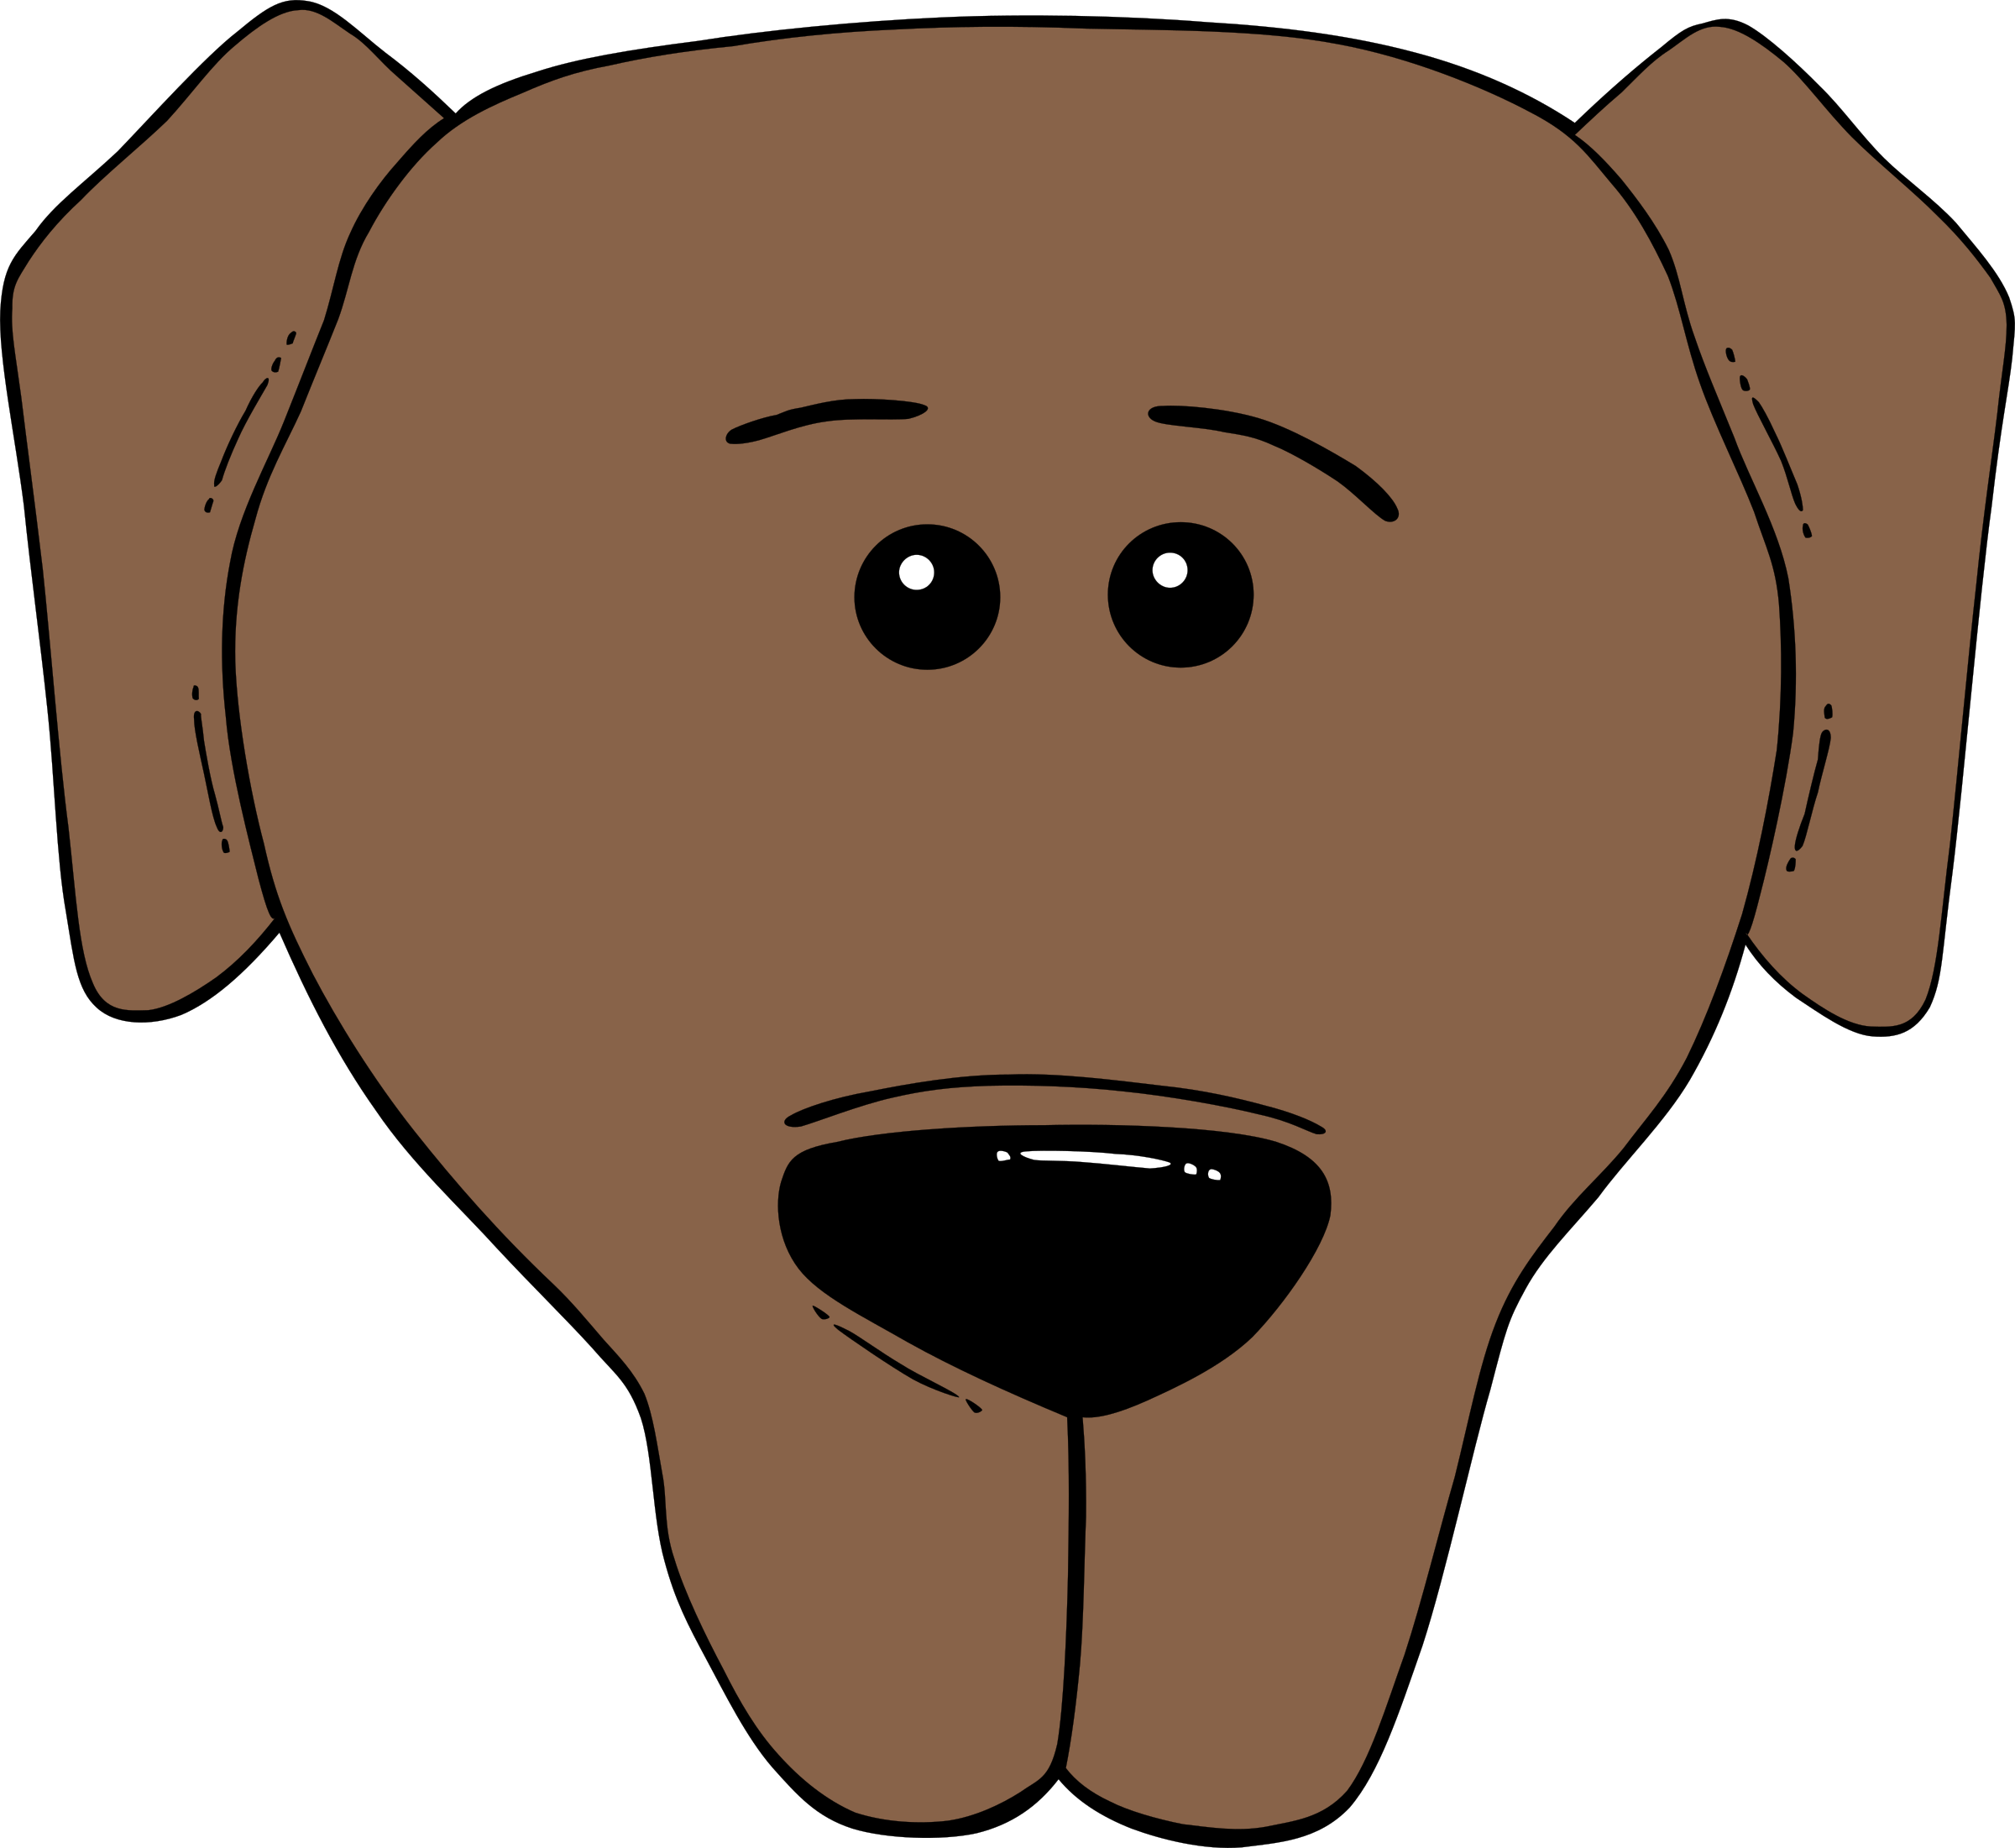 Happy cartoon dog clipart banner royalty free library Clipart - Dog Face Cartoon - World Label banner royalty free library